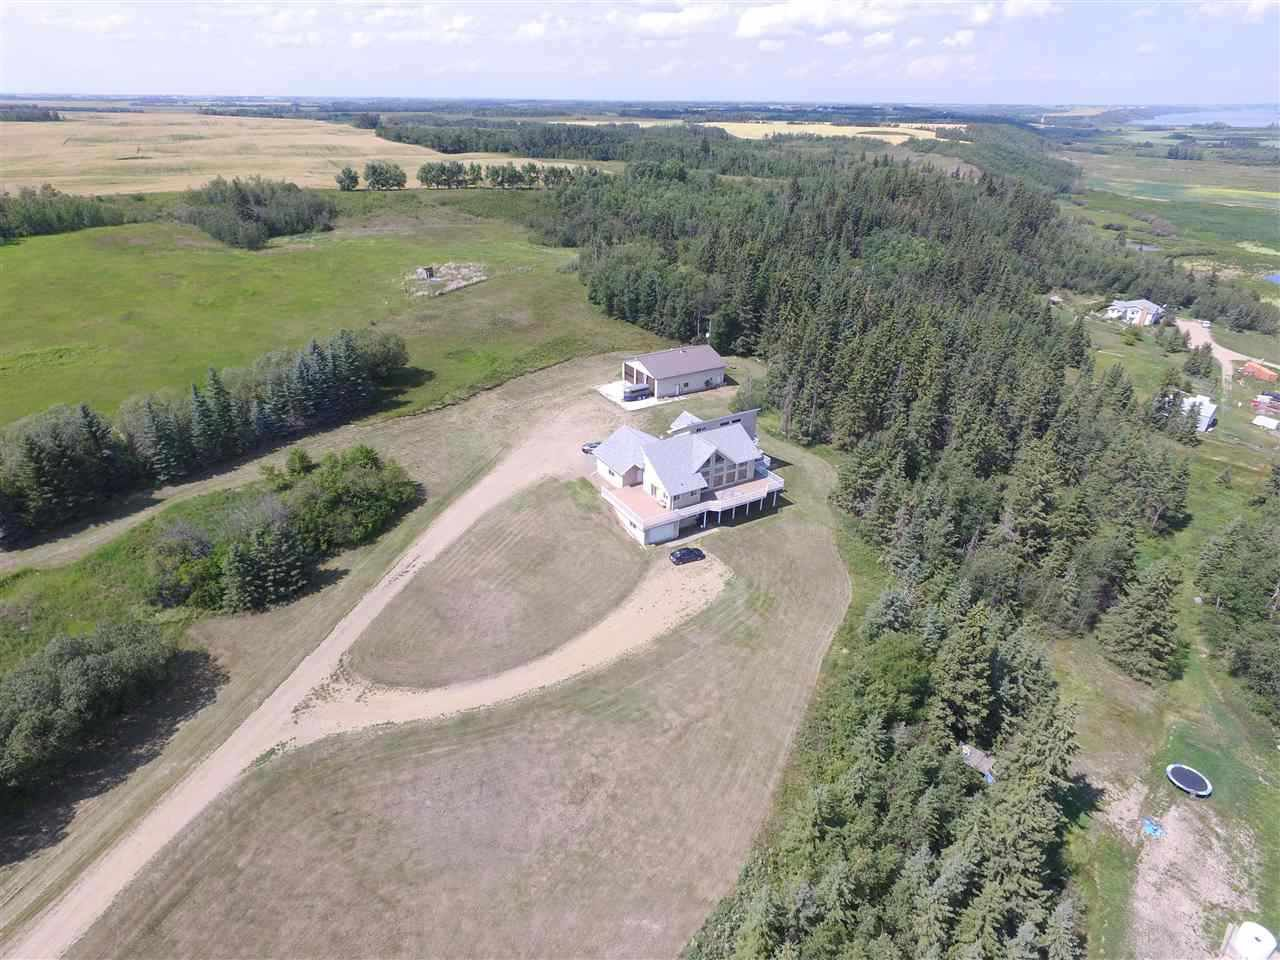 Photo 28: Photos: 462082B Hwy 822: Rural Wetaskiwin County House for sale : MLS®# E4170309